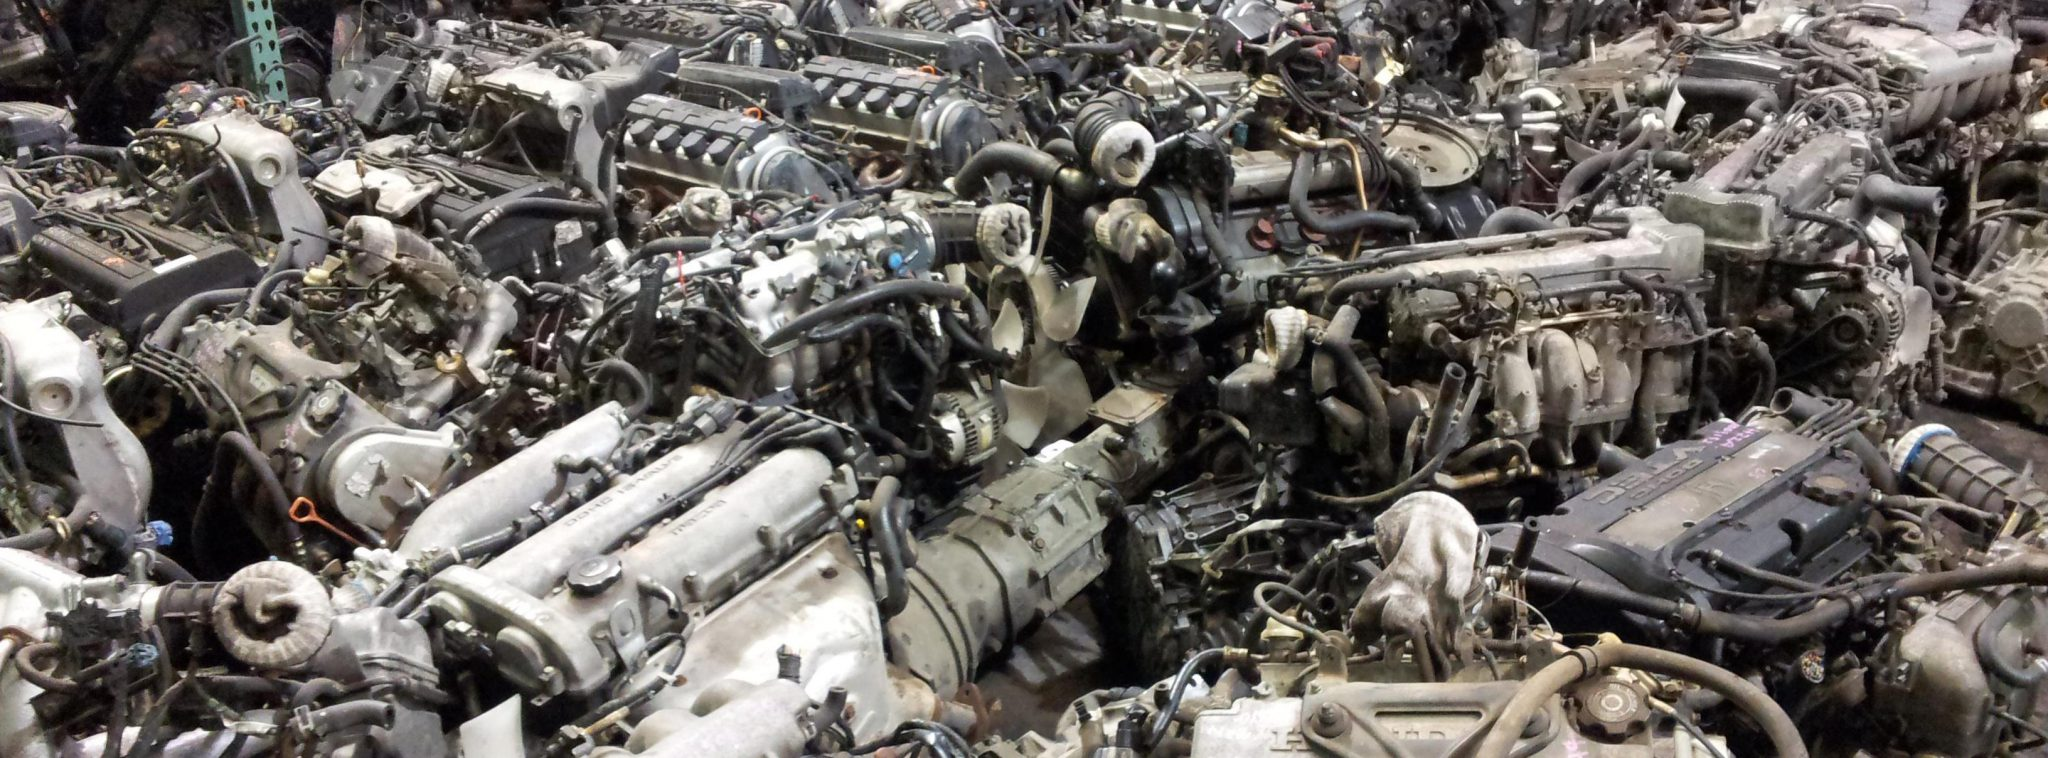 Used Engines Motors Gearboxes For Sale Car Wrecker Nz